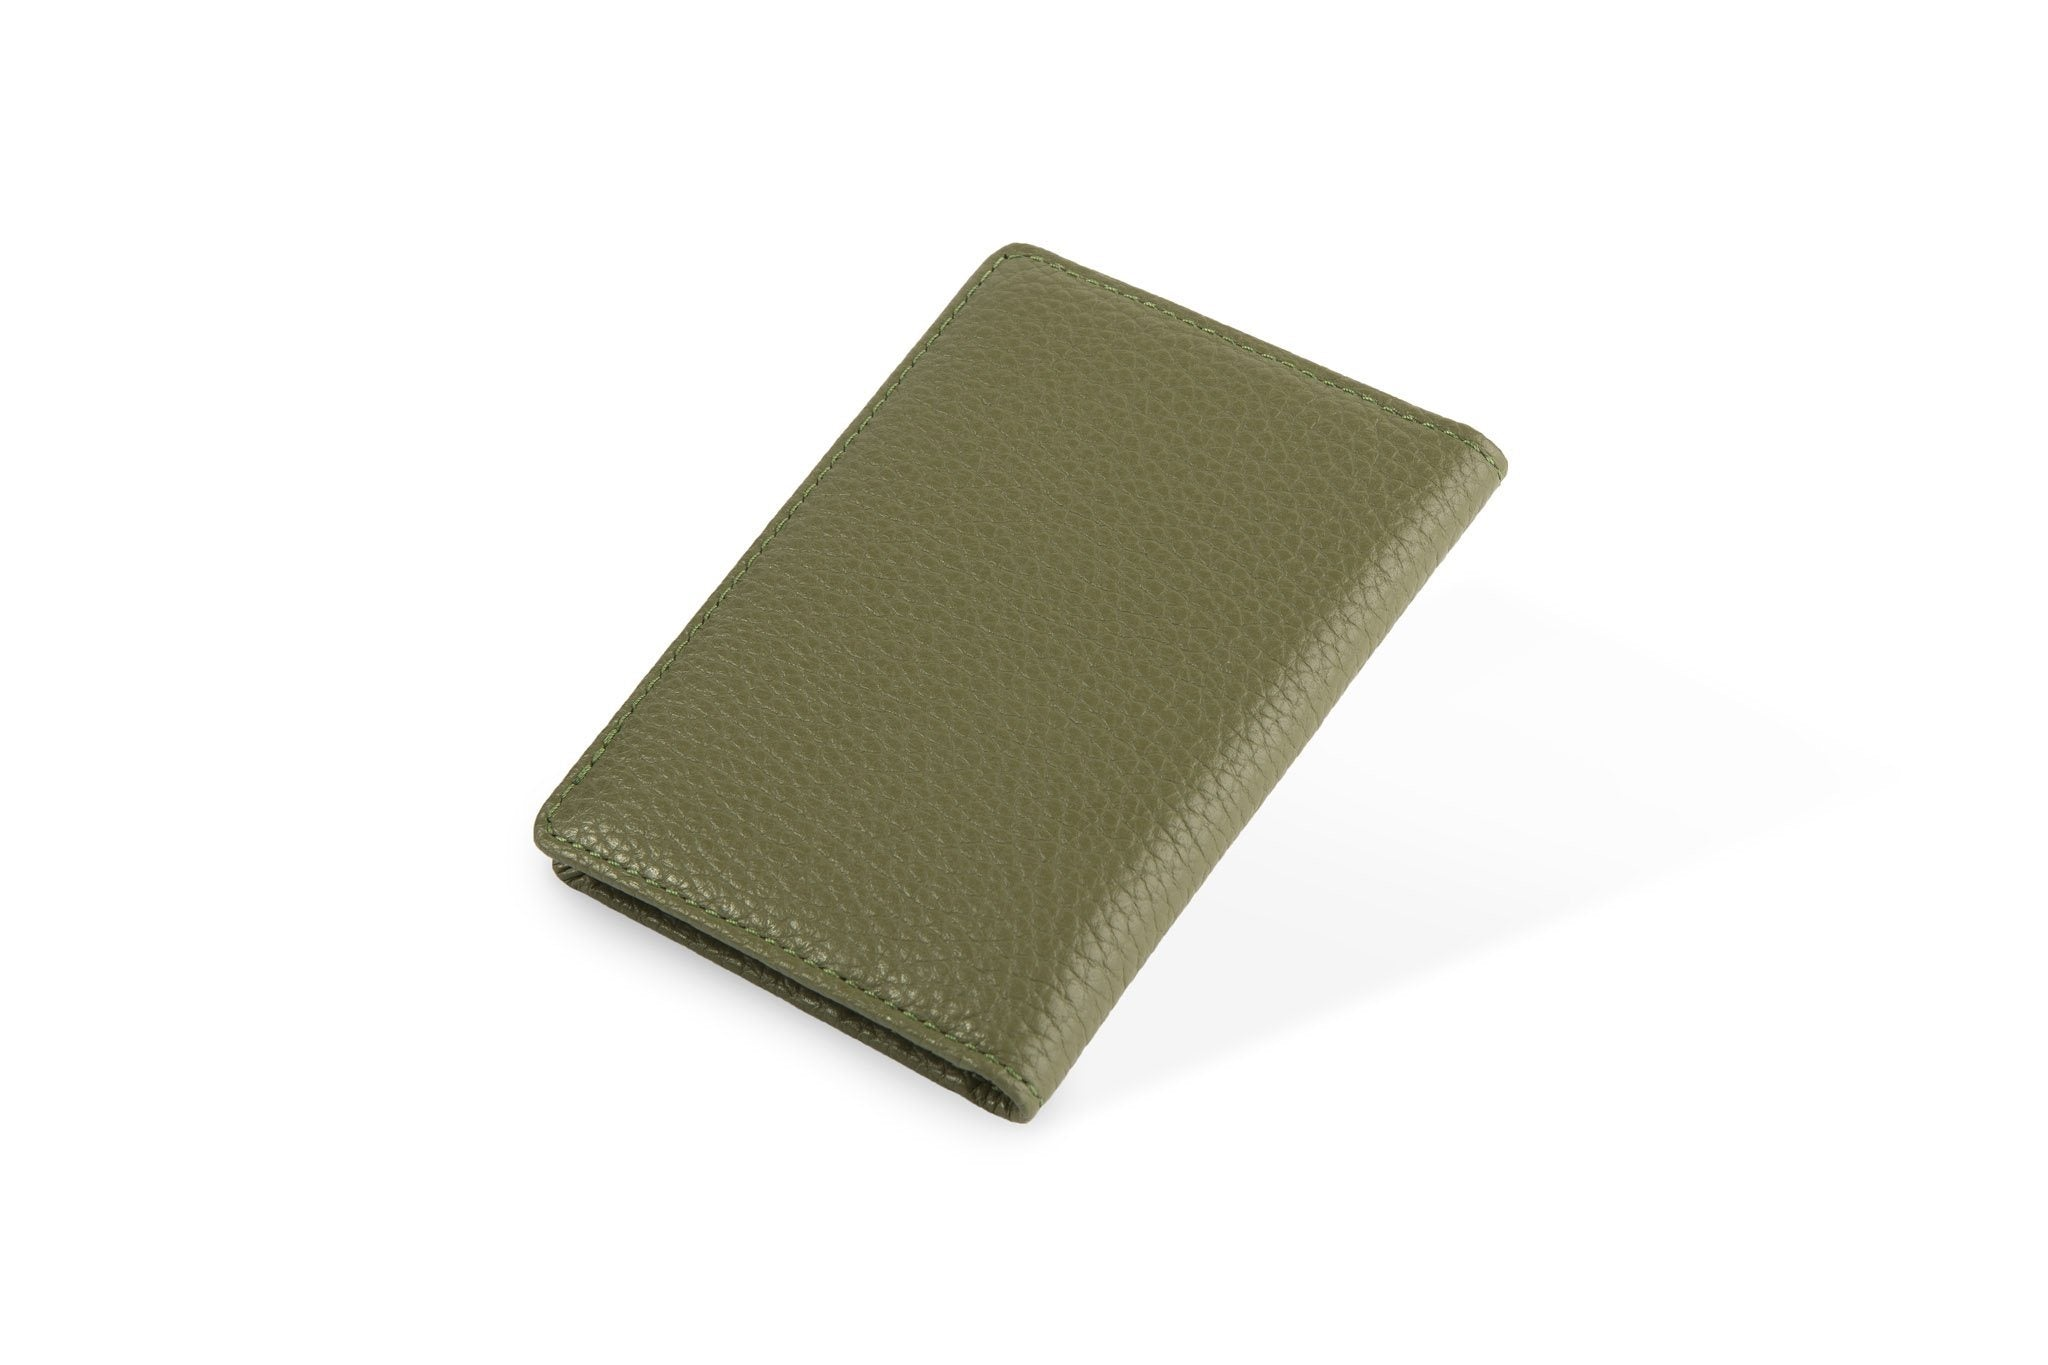 Verde Militare (Army Green)